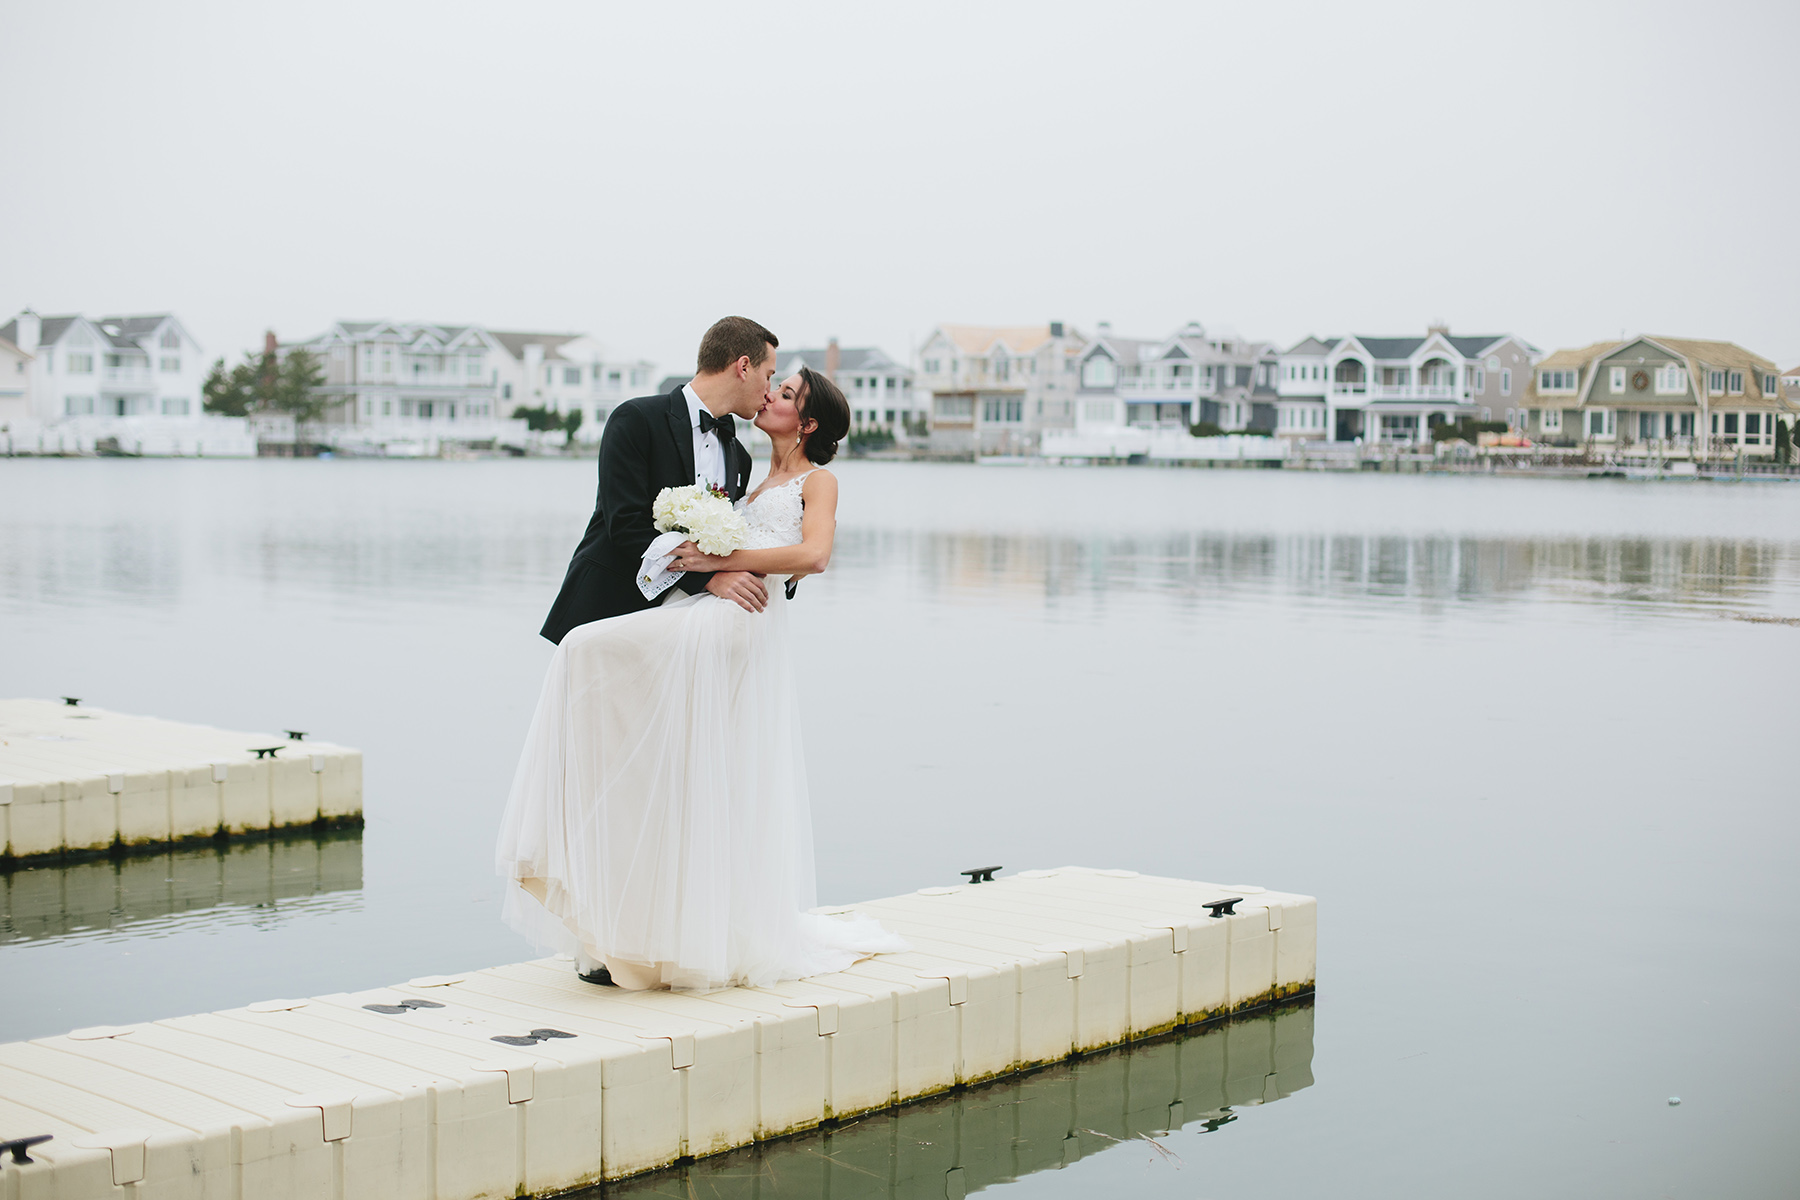 The Reeds Stone Harbor Wedding